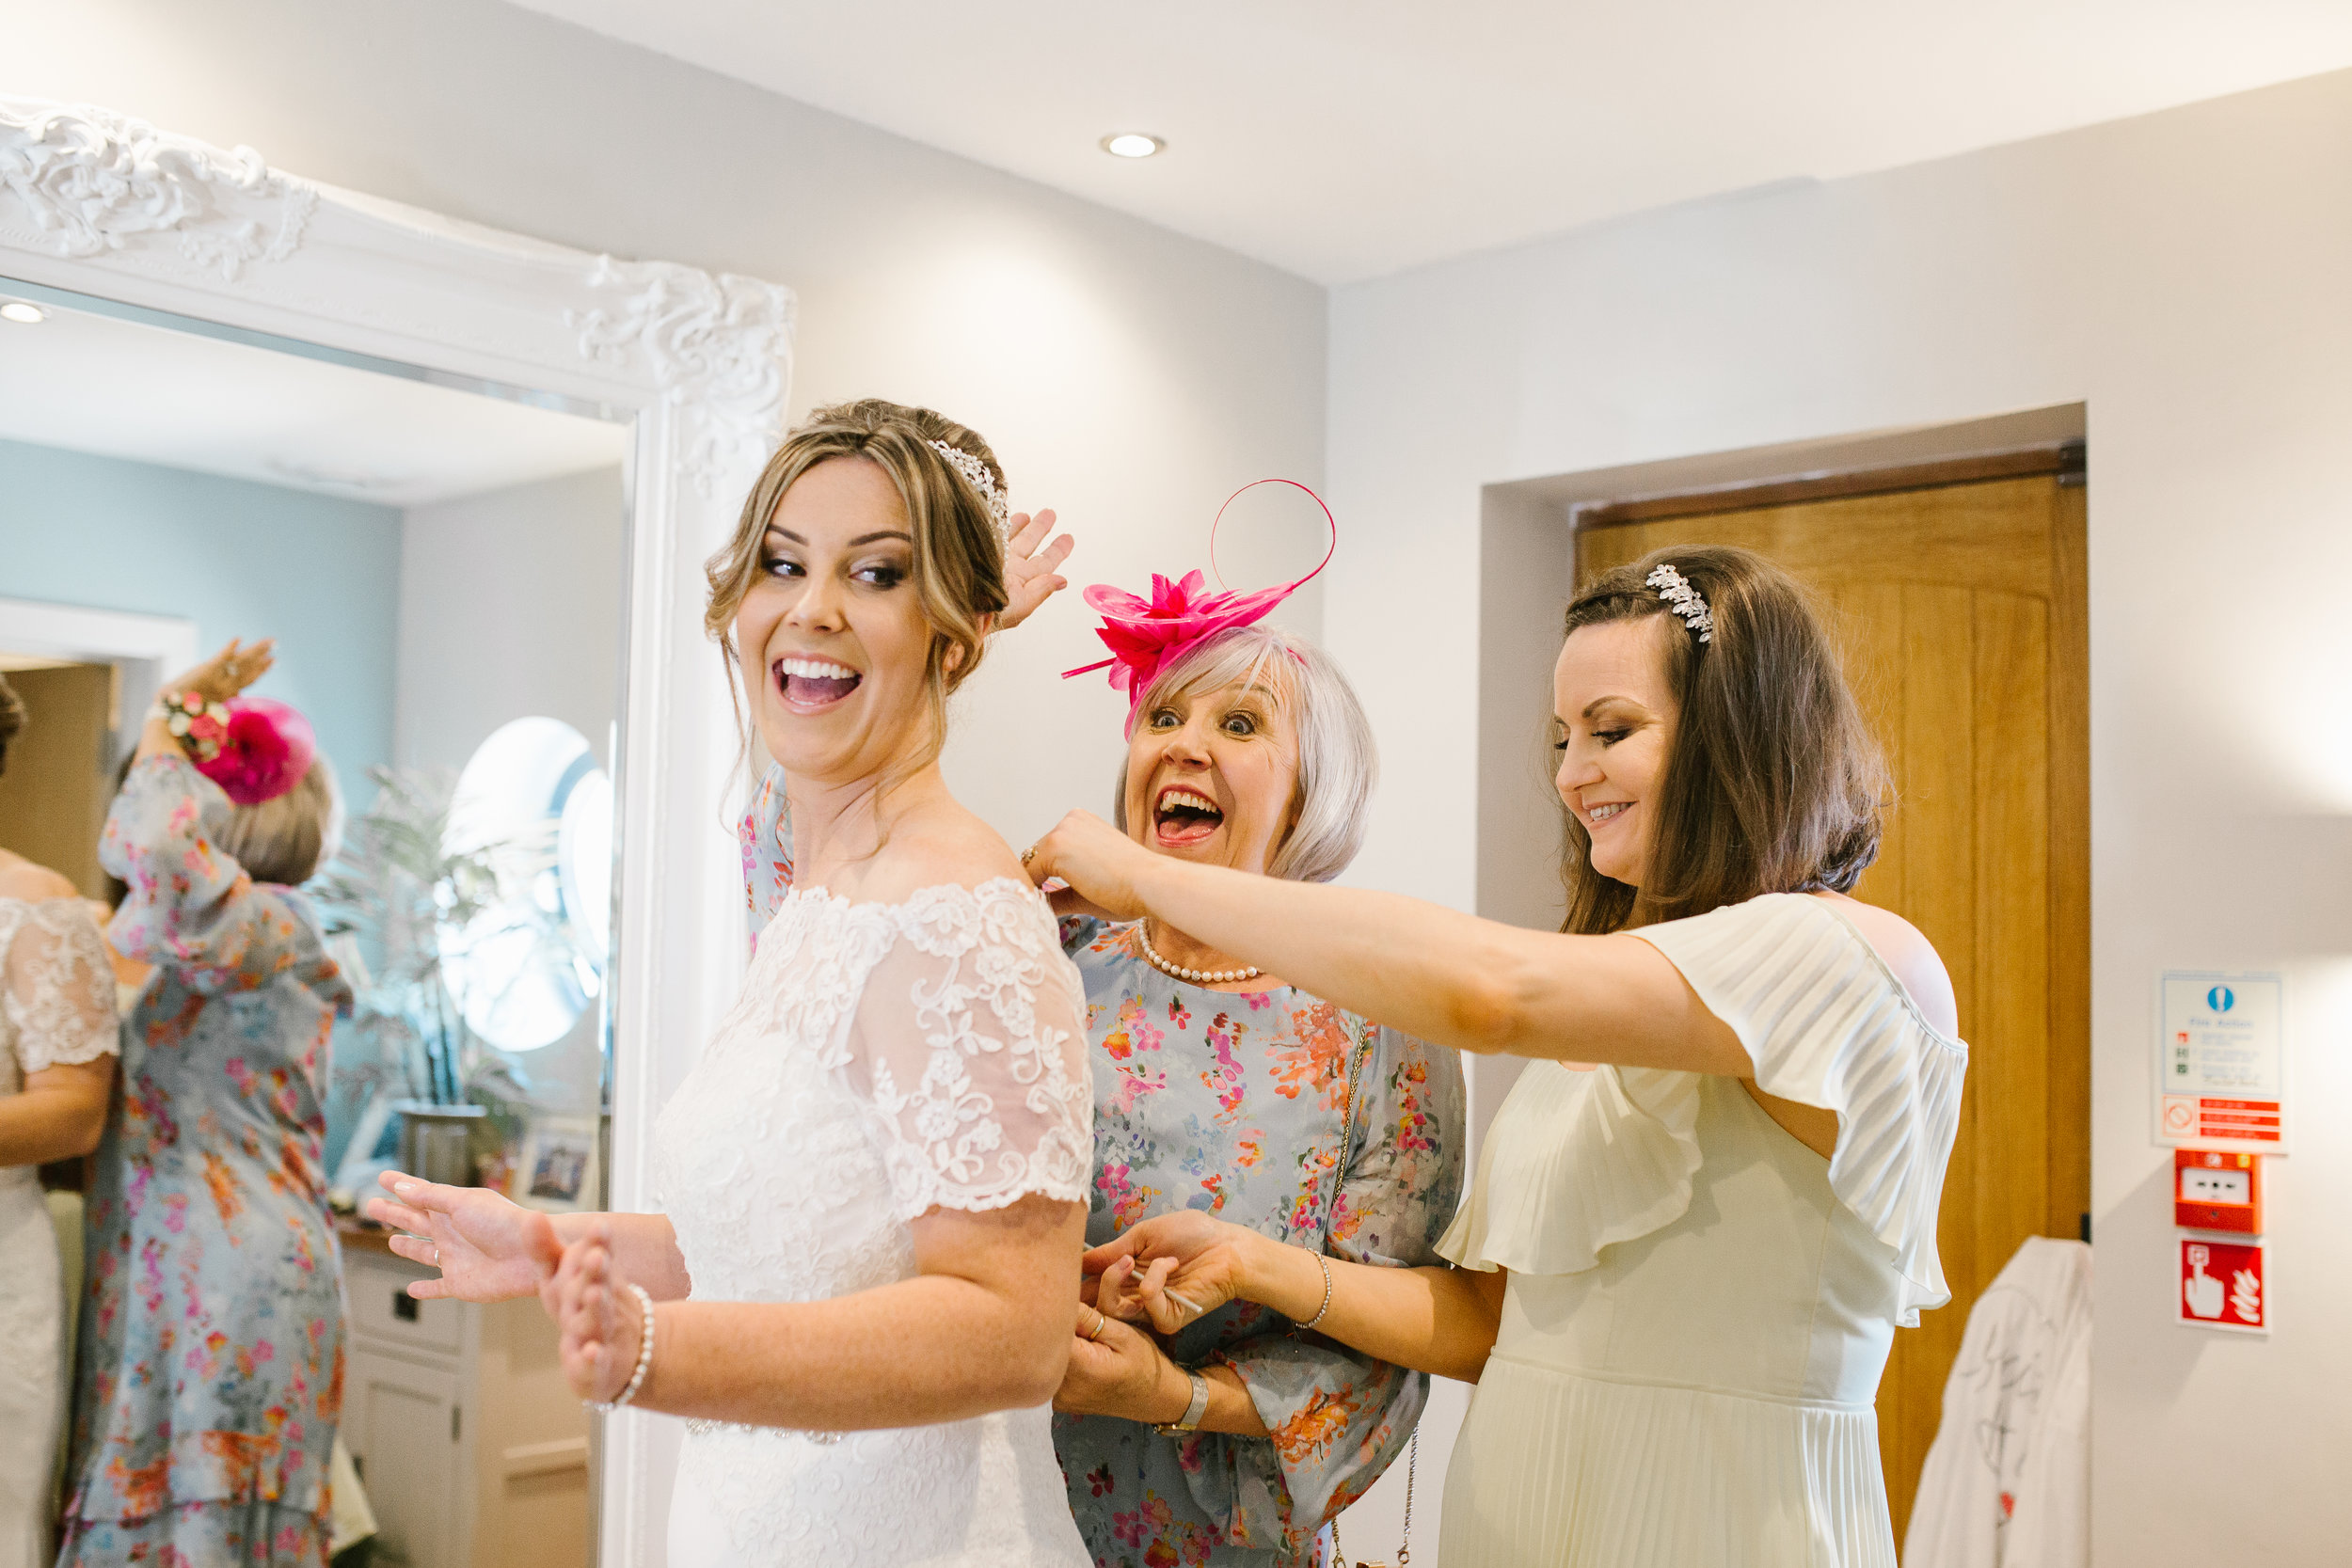 bridesmaids and mother of the bride fastening the brides wedding dress on the morning of her wedding